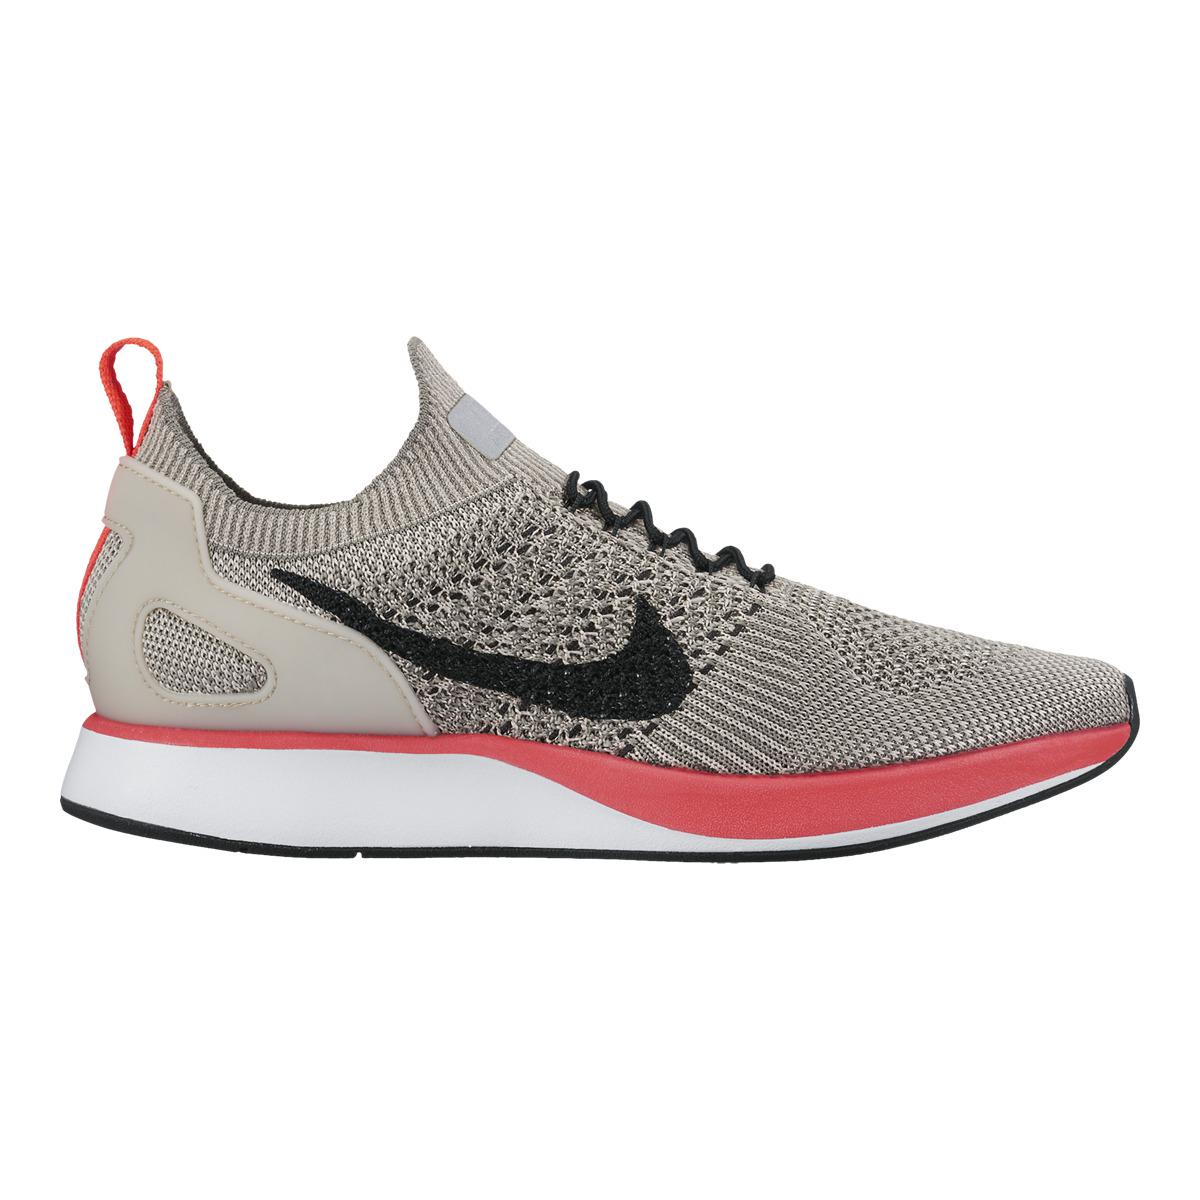 547d4919665e Gallery. Previously sold at  El Corte Ingles · Women s Nike Flyknit Women s  Air ...